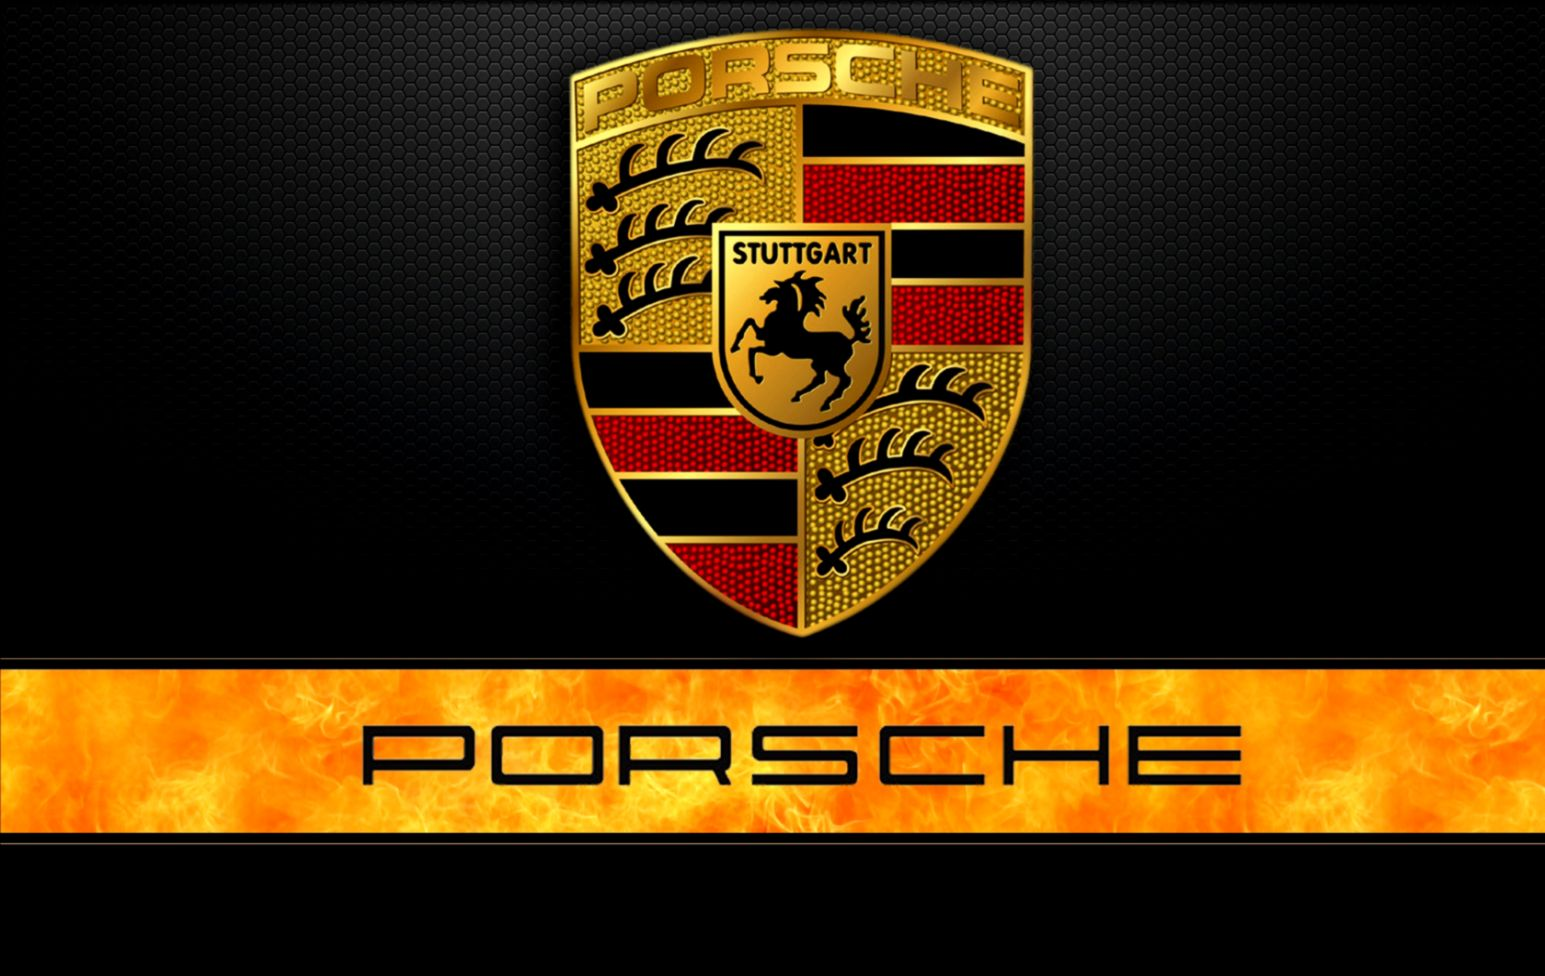 View Original Size FunMozar Porsche Logo Image Source From This